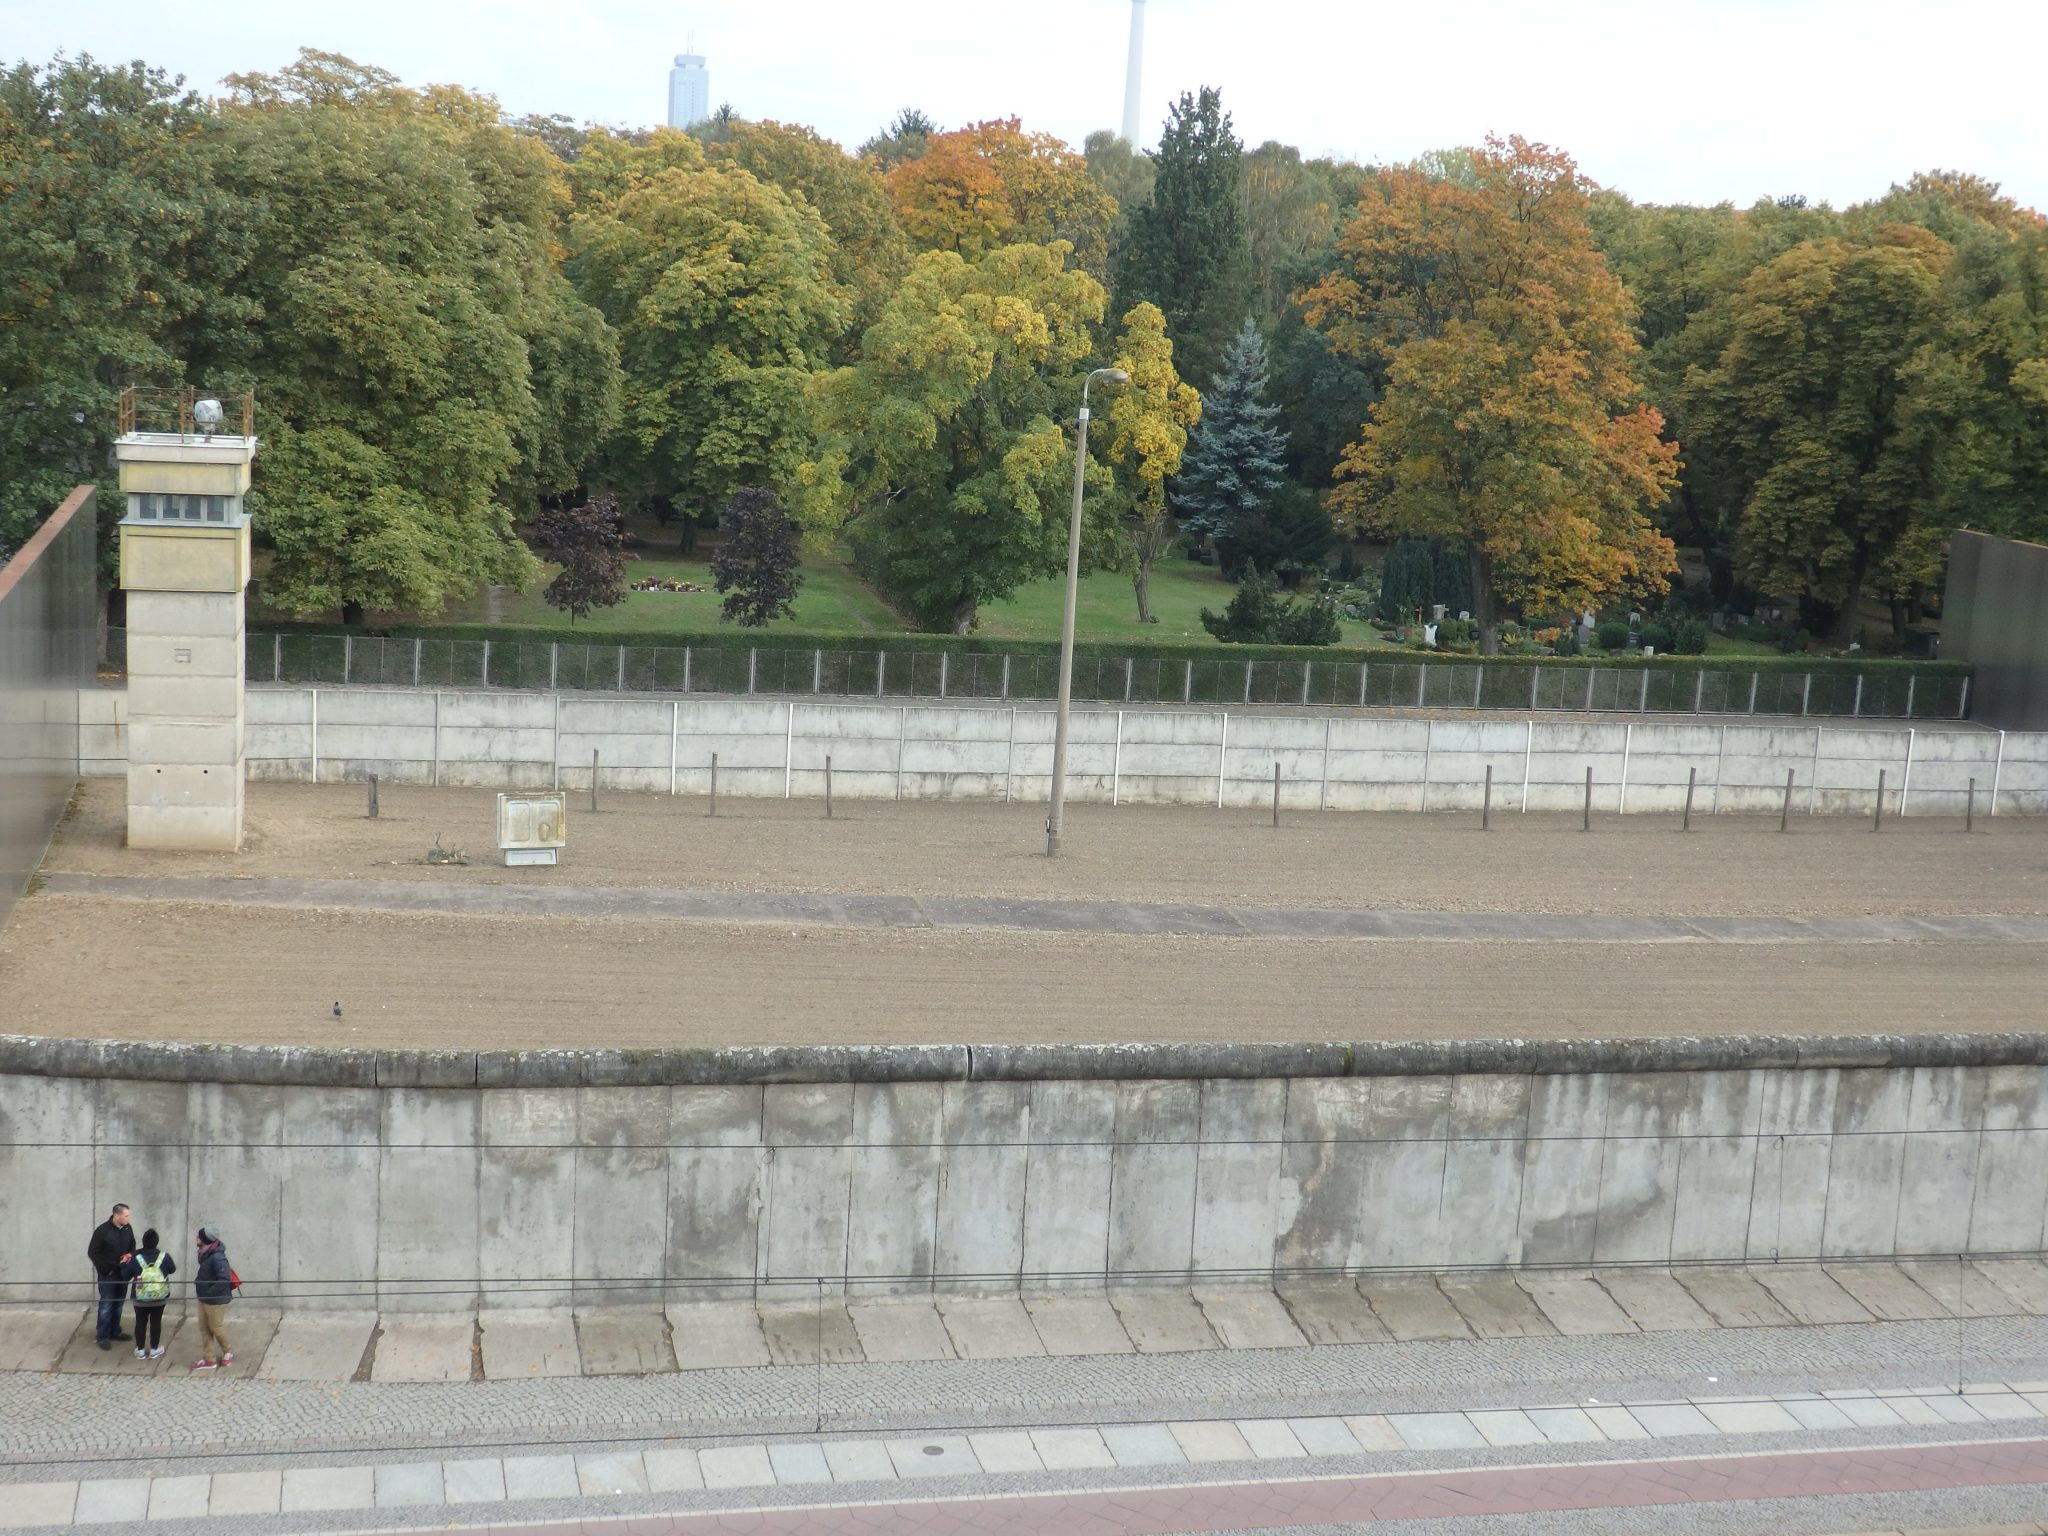 the view of the restored piece of the Berlin Wall in the Berlin Wall Memorial